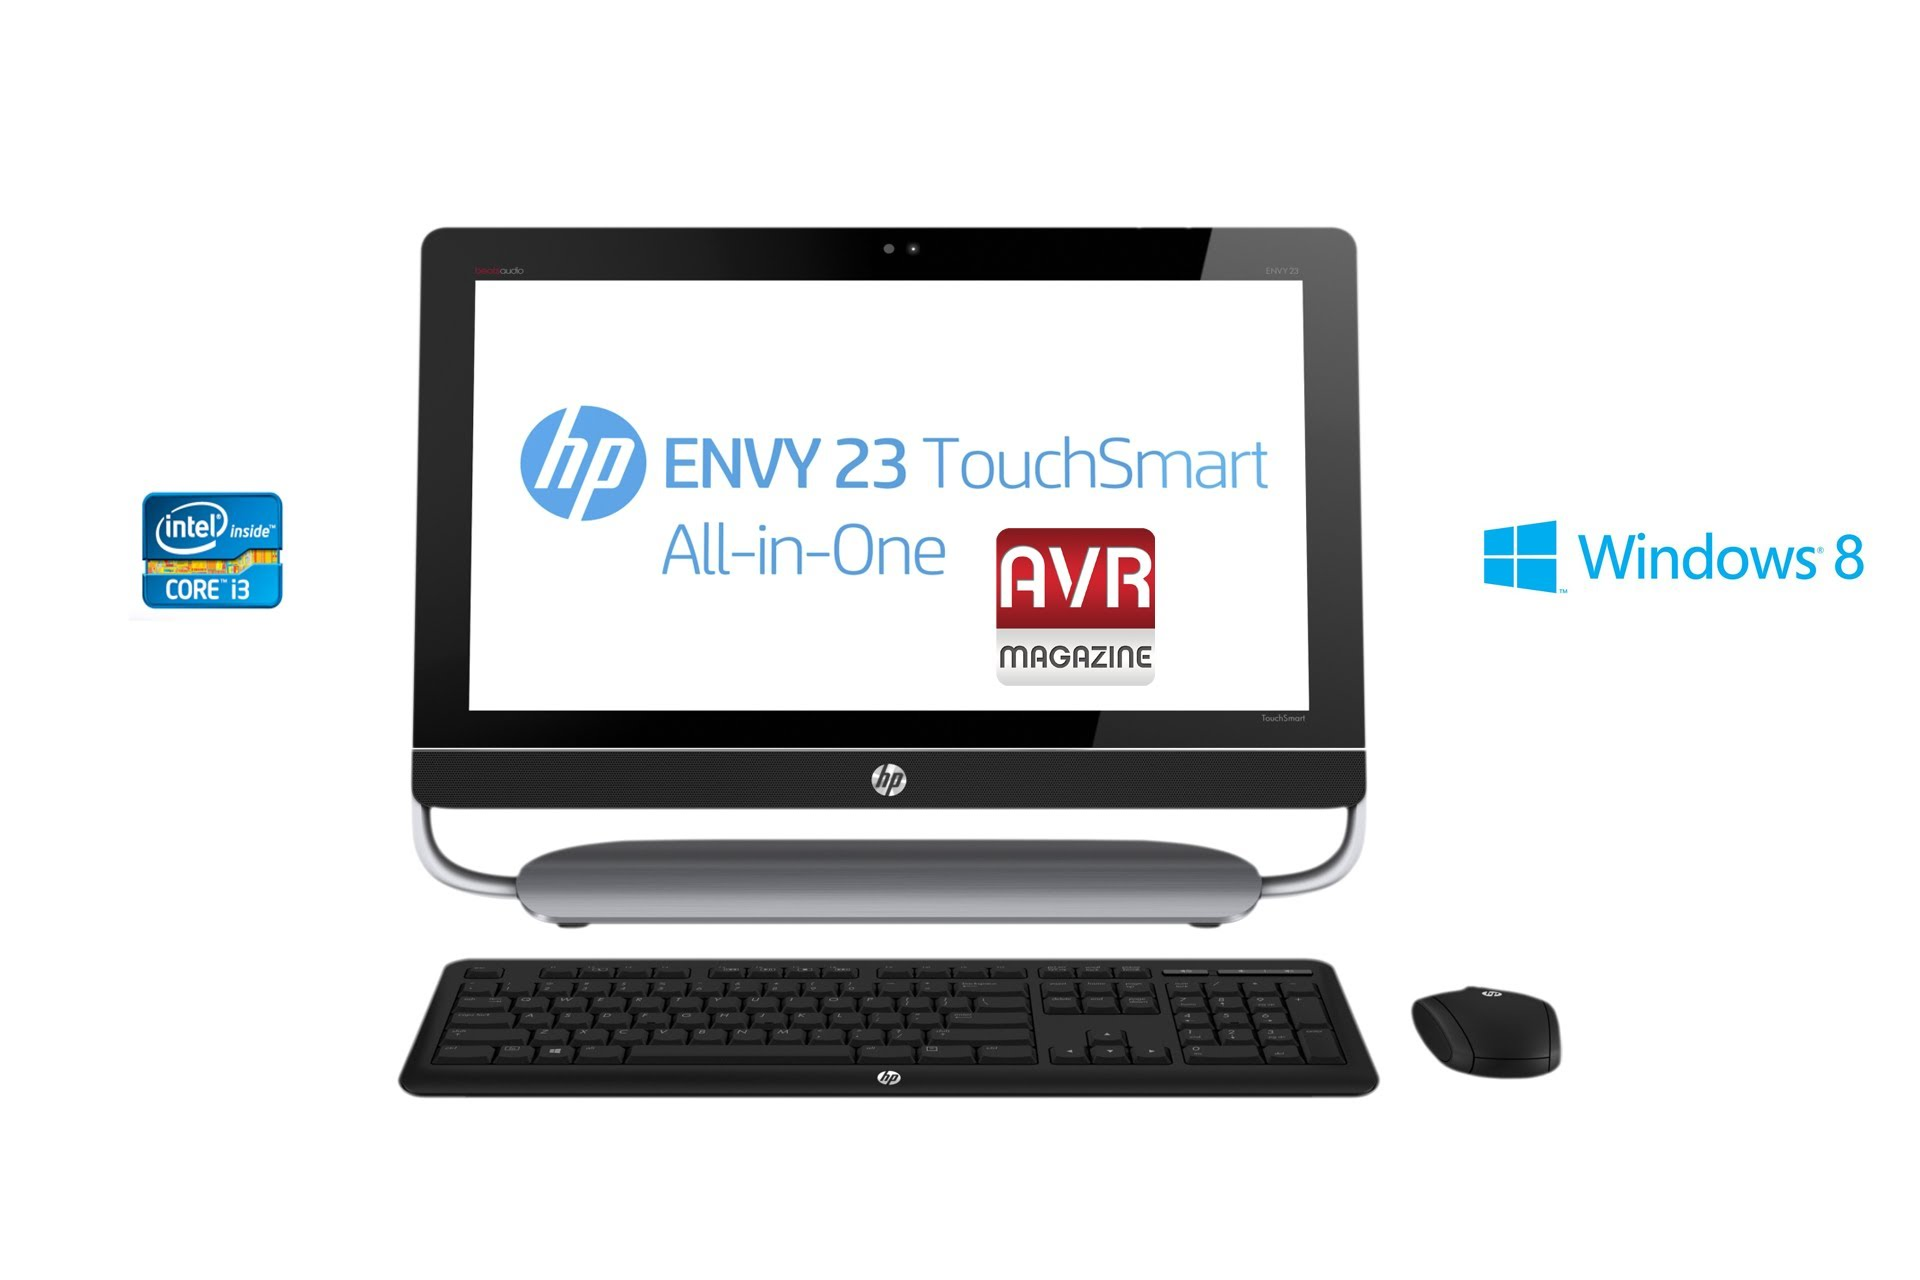 PC All-in-One Hp Envy 23 TouchSmart e Tv - Video Recensione AVRMagazine.com